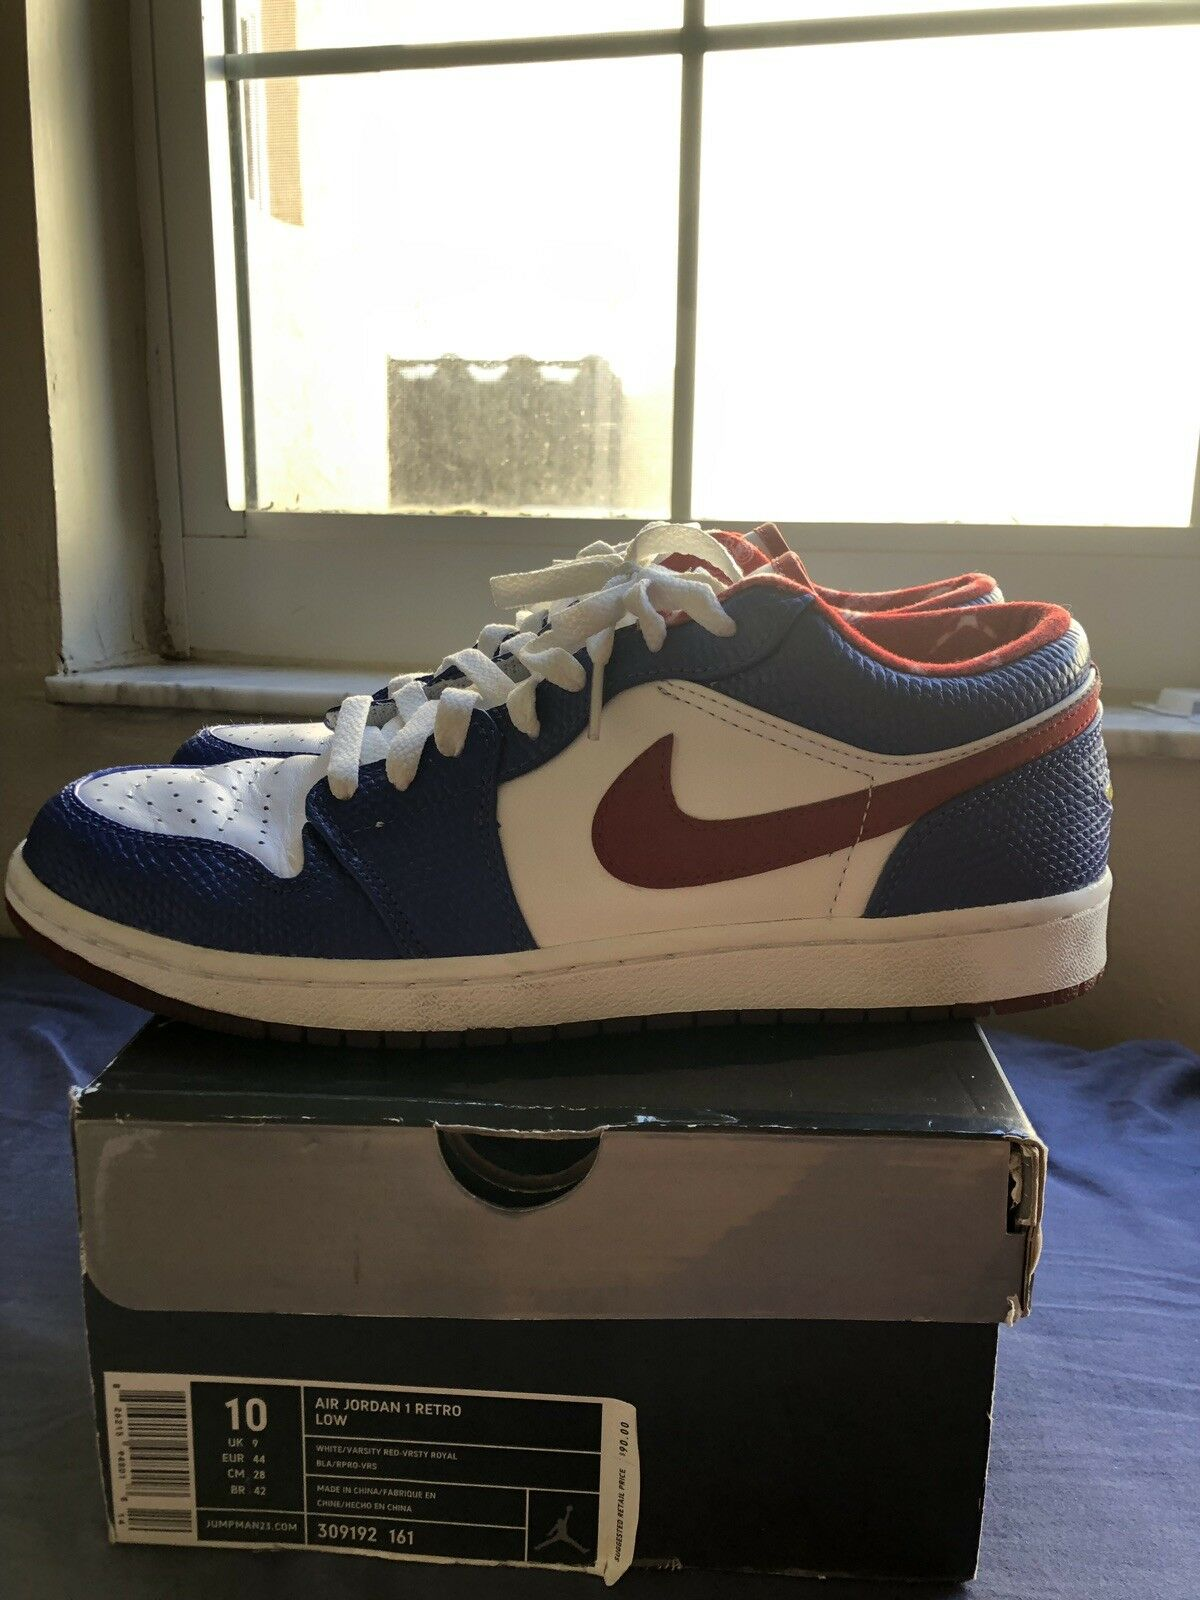 Air Jordan Retro 1 Low Sz 10 309192 161